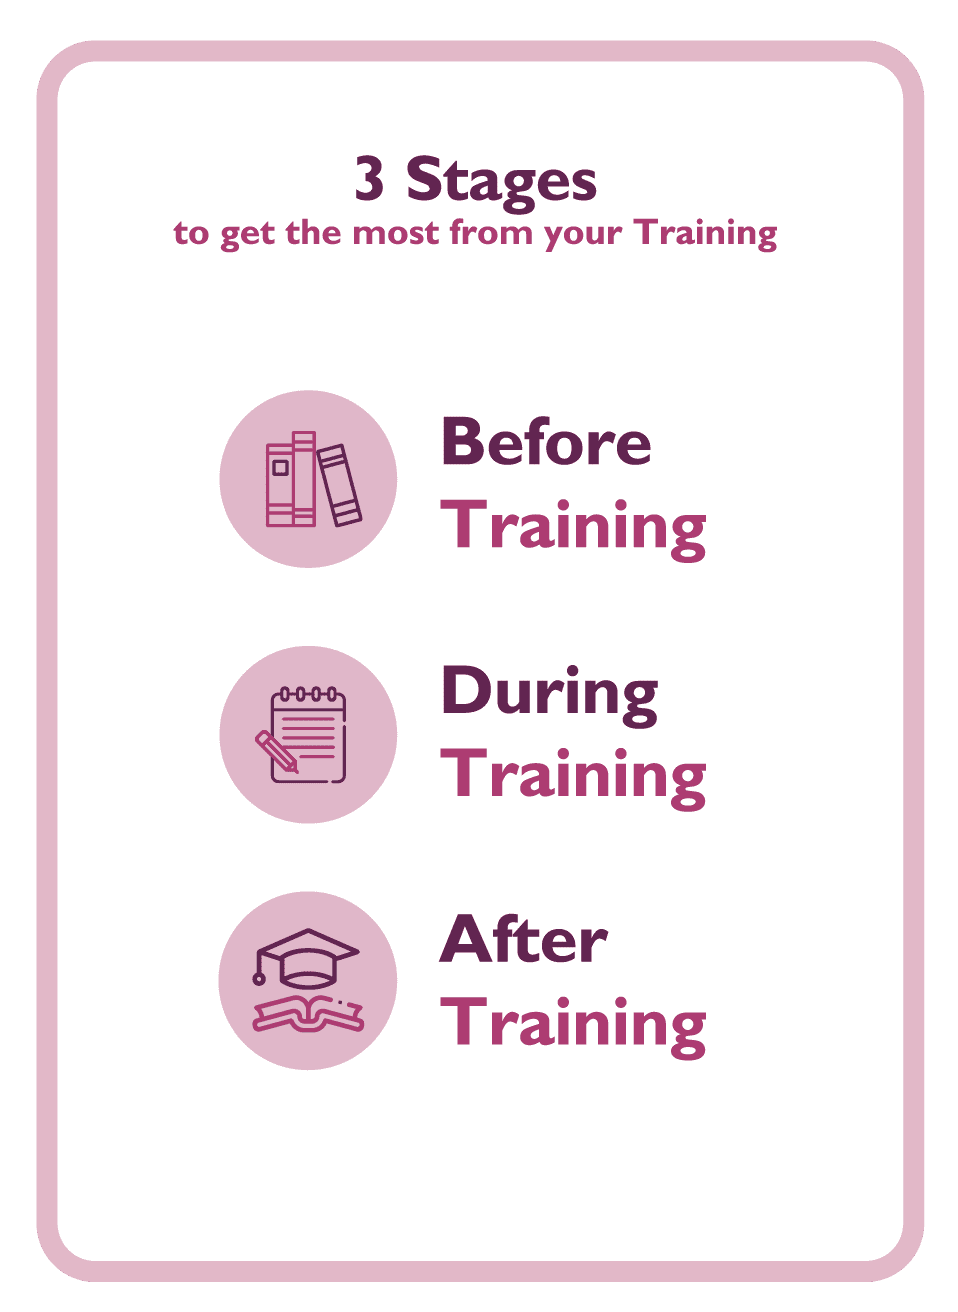 3 stages of training coaching cards